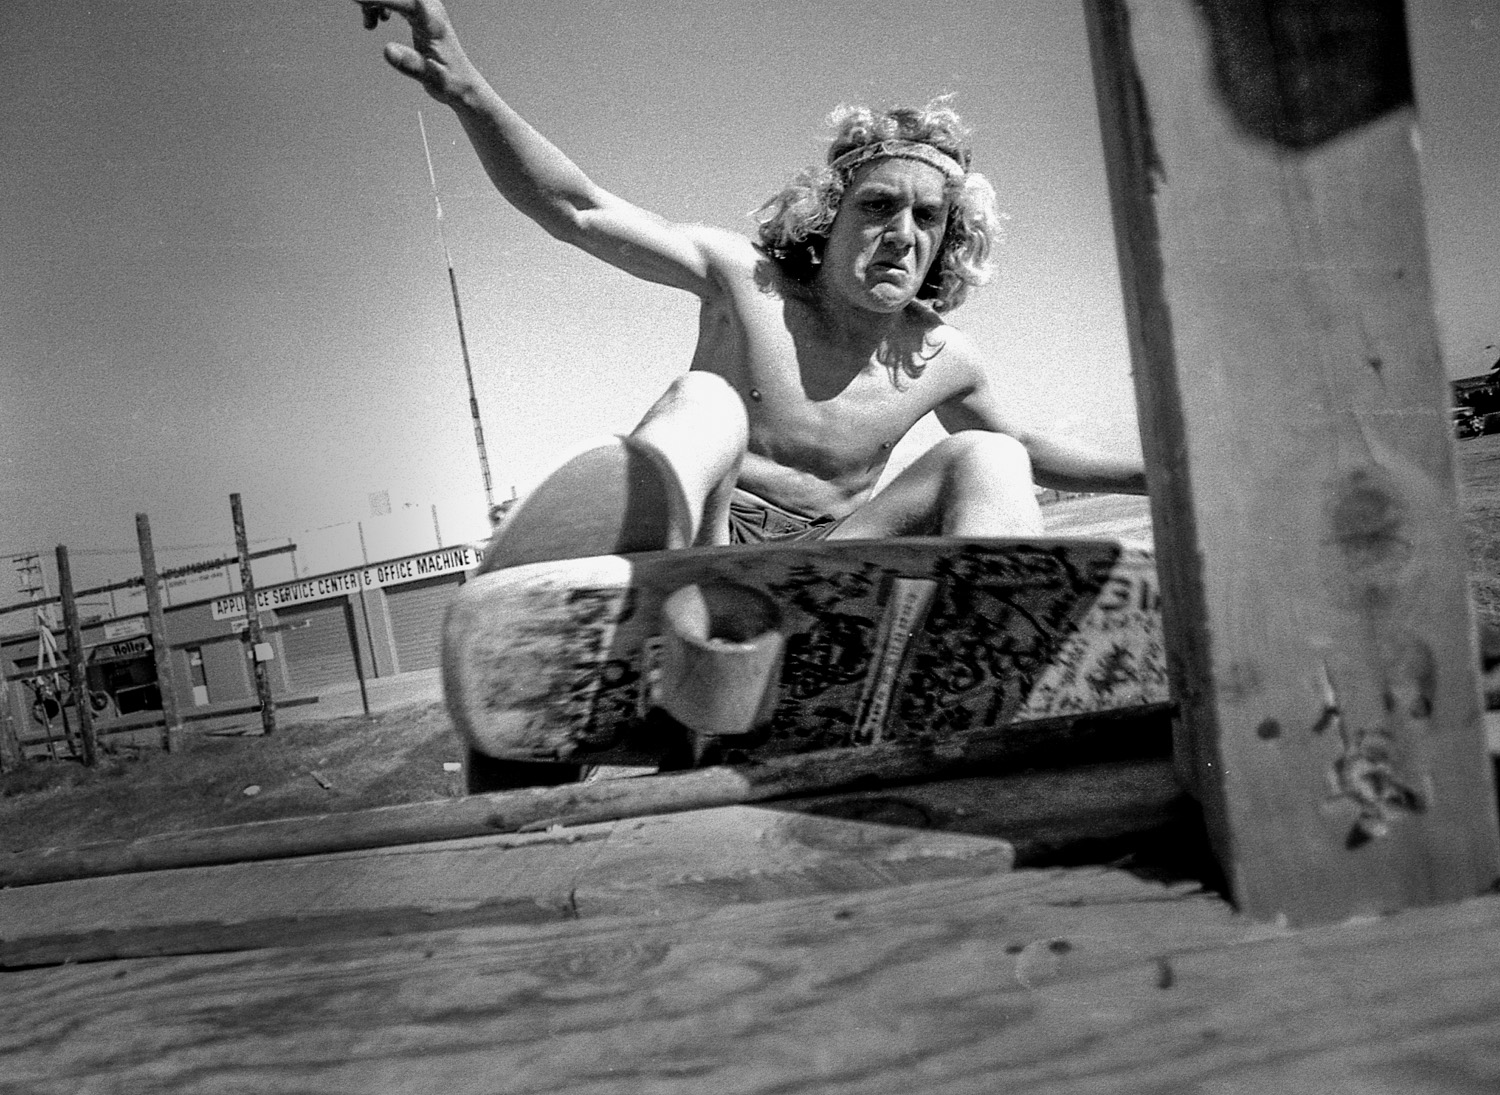 Brad Williams, Huntington Beach, Ca. 1976